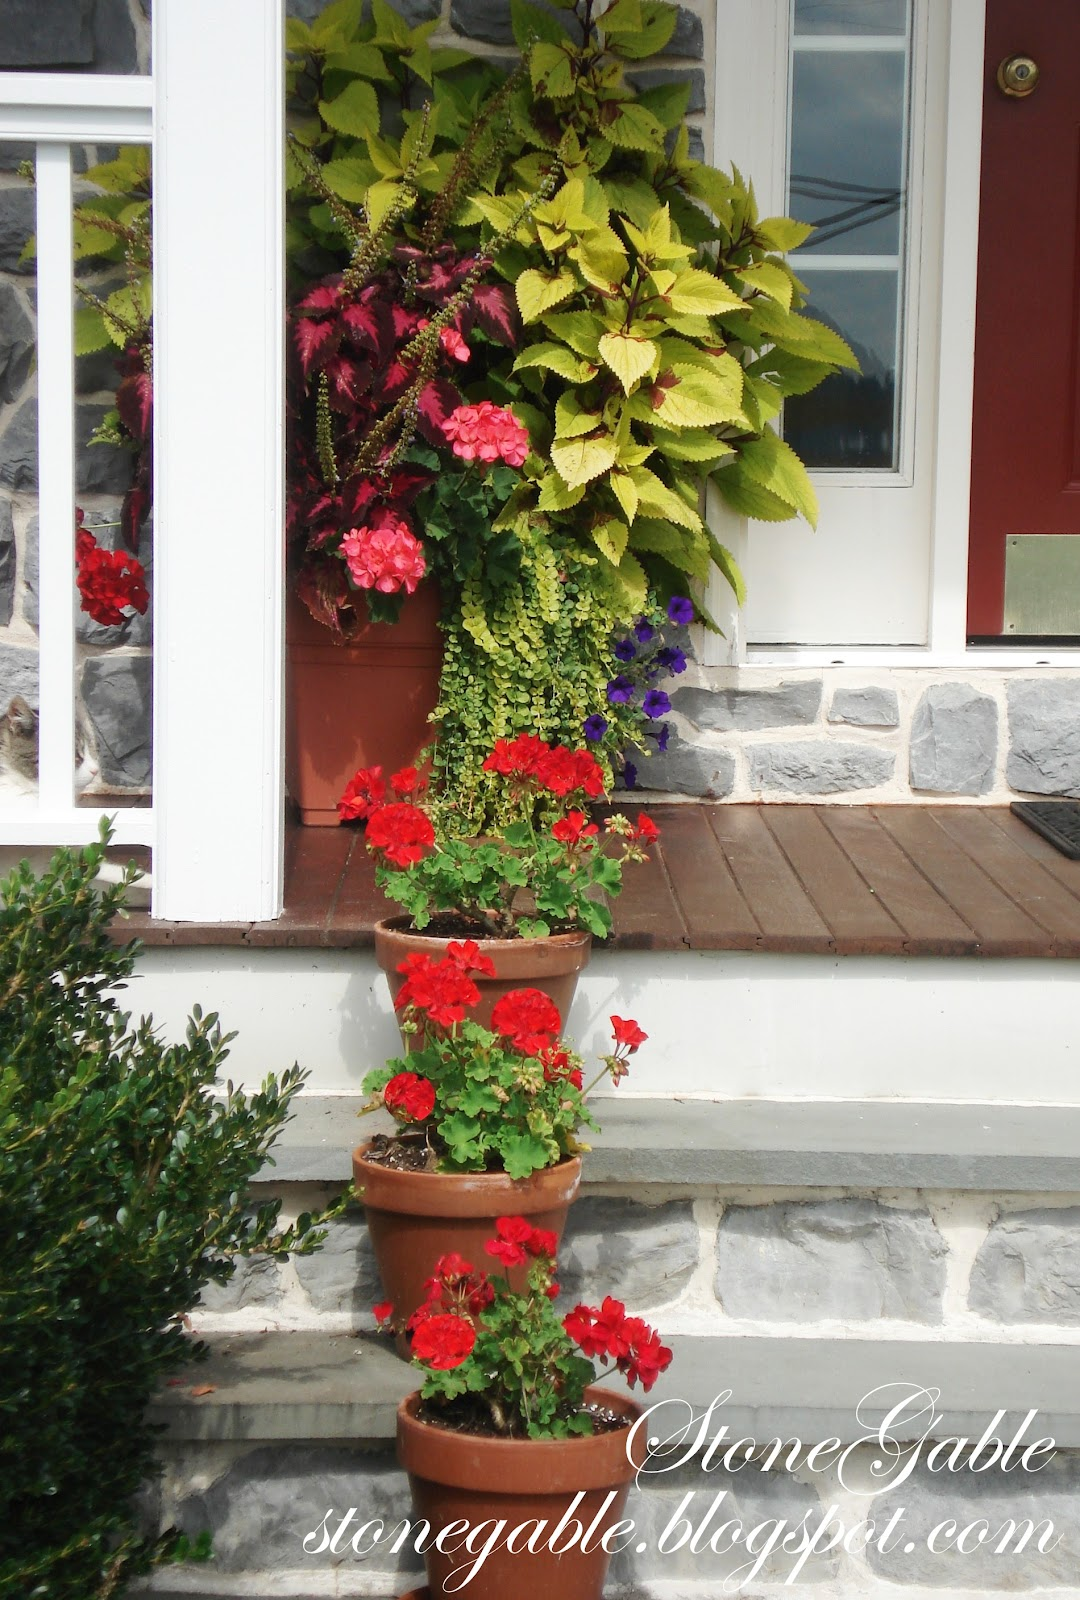 FRONT PORCH FLOWERS StoneGable